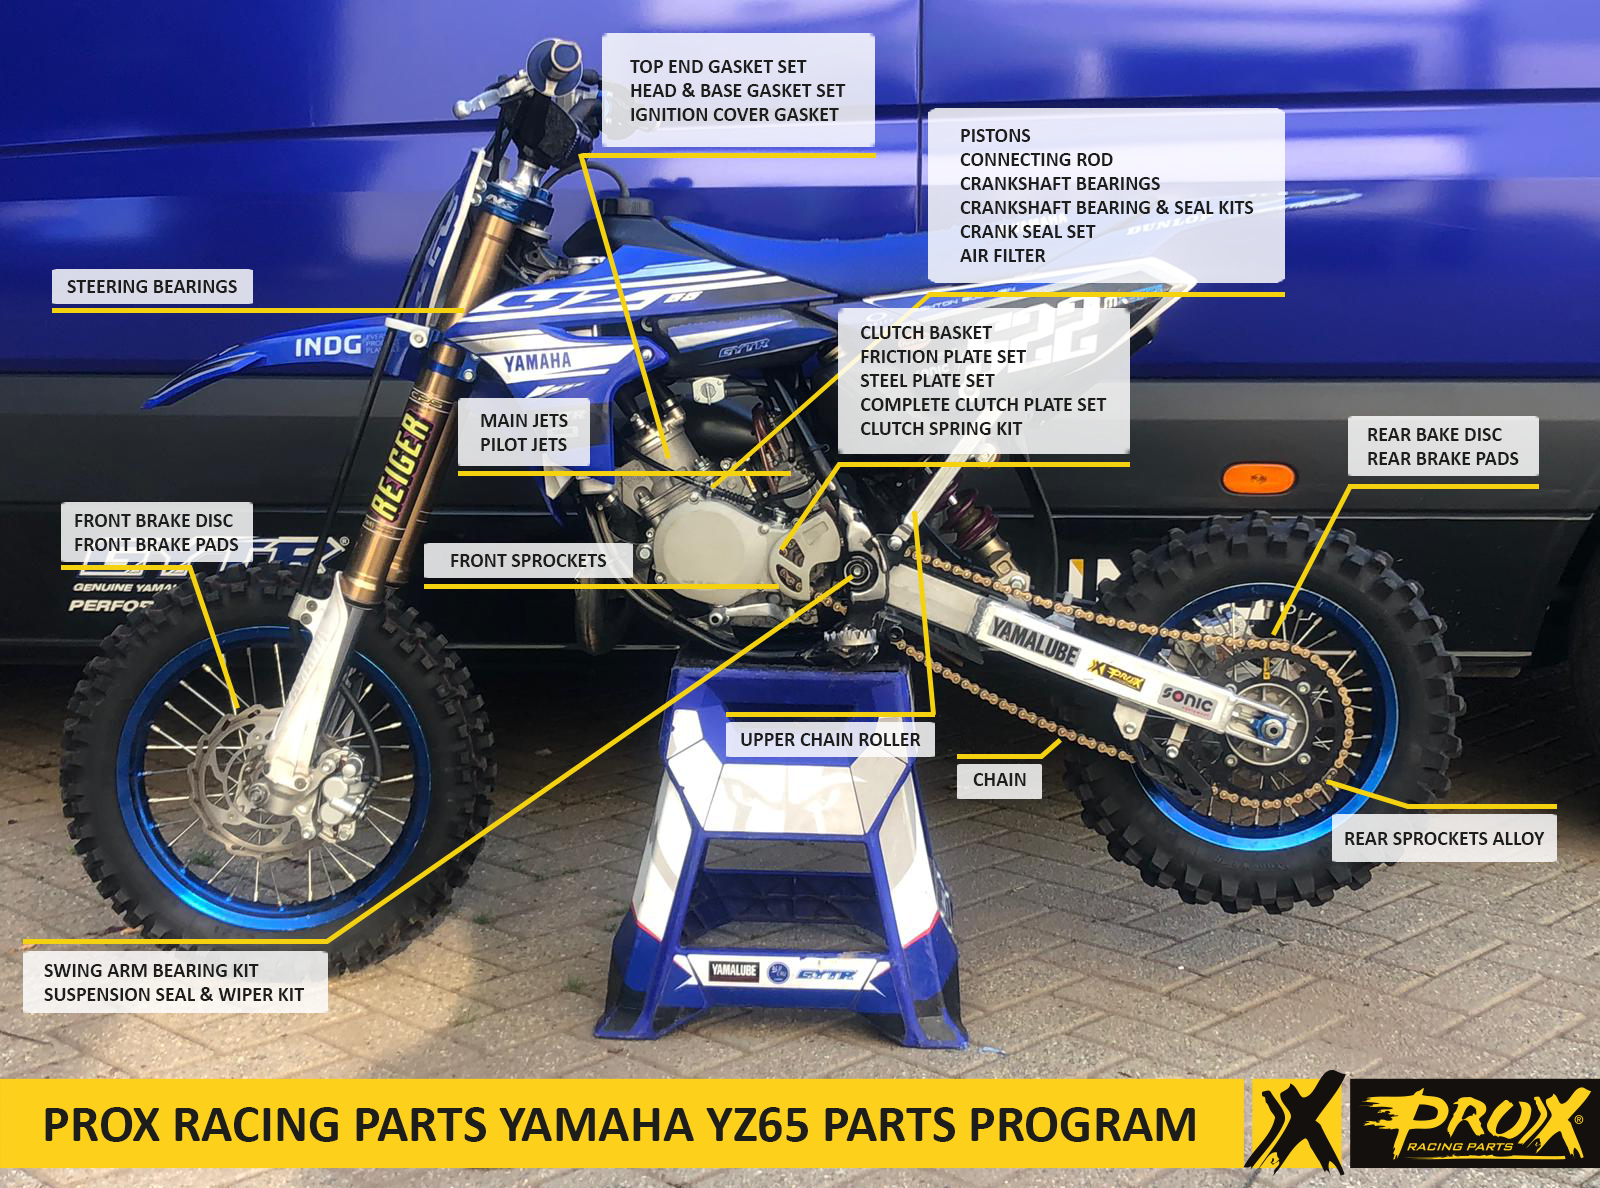 ProX Racing Parts' Complete Yamaha YZ65 Parts Lineup